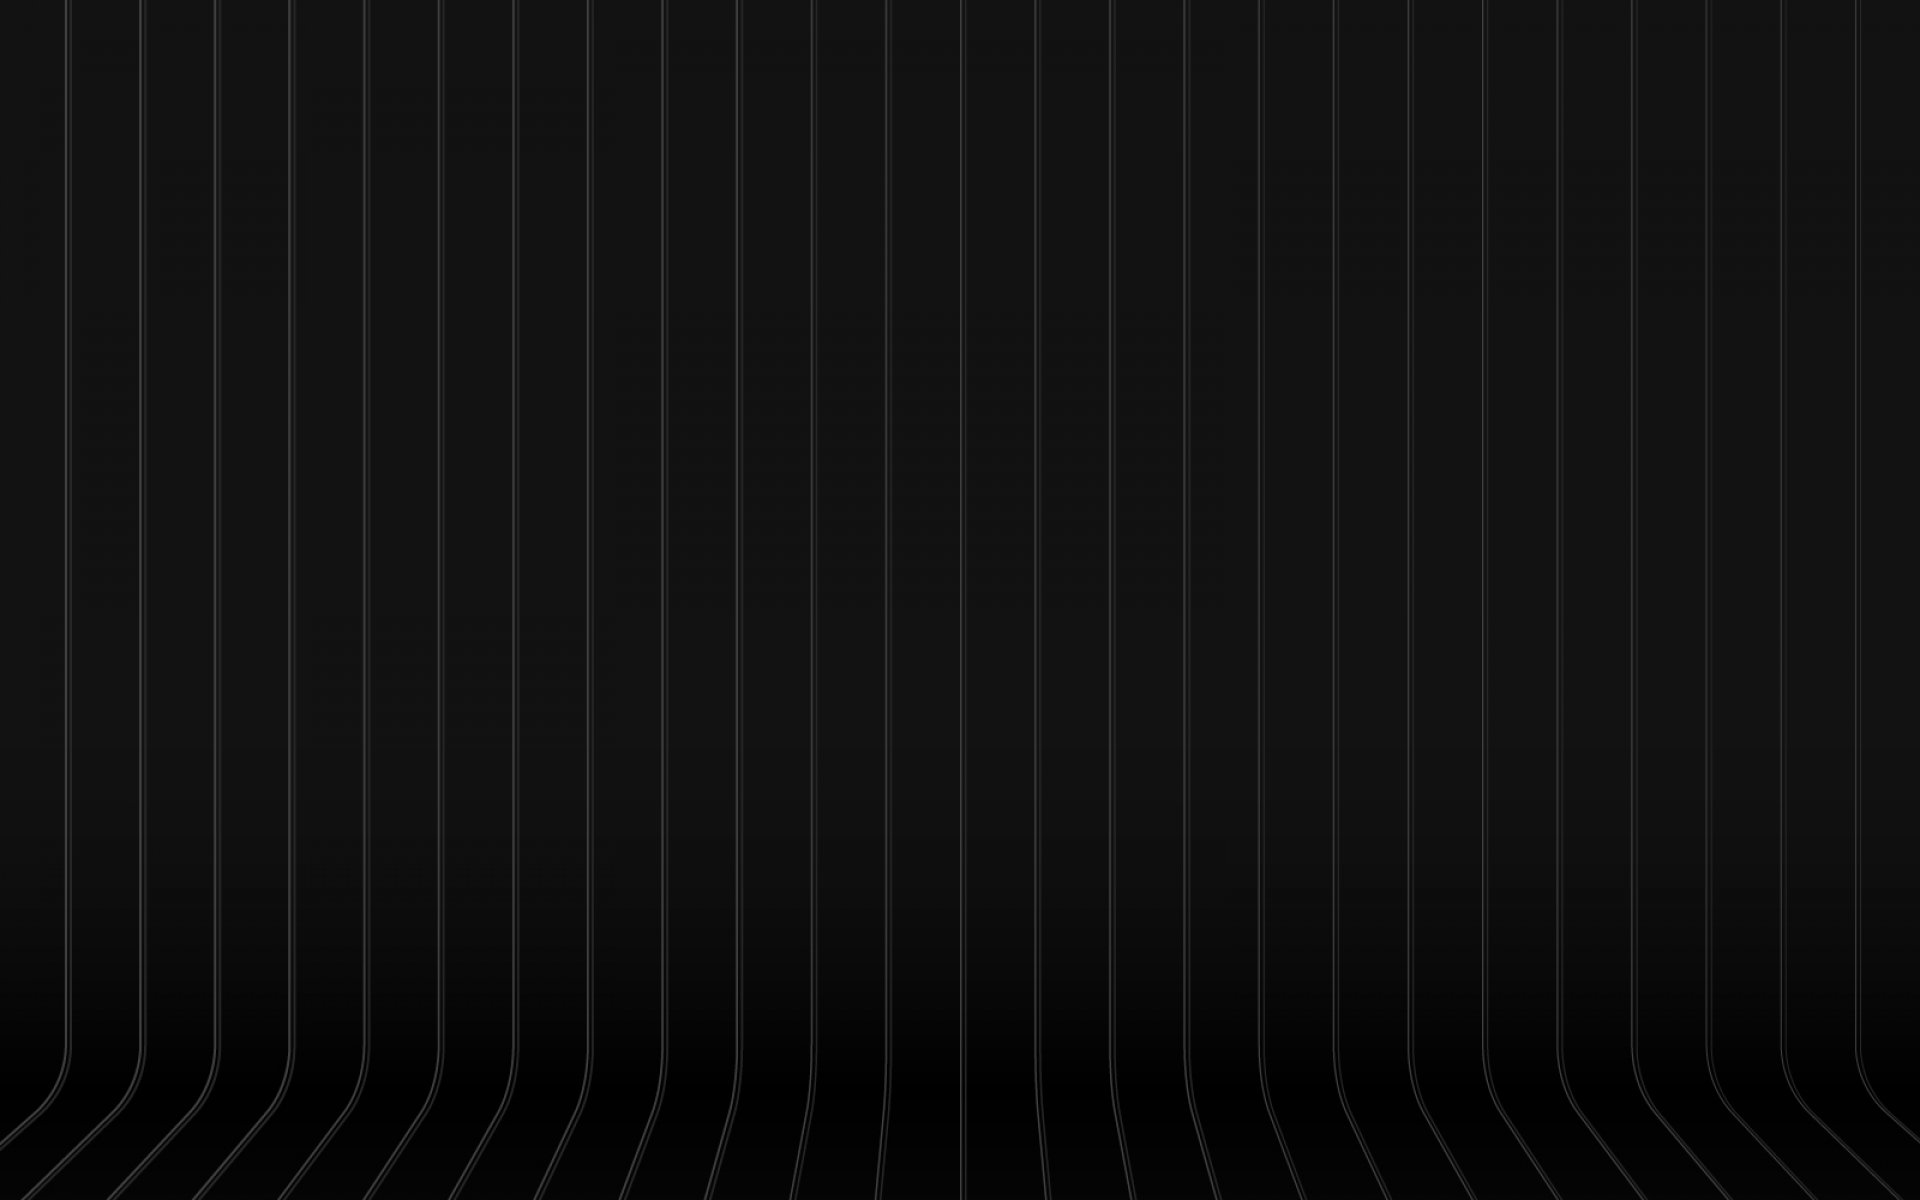 black monochrome pinstripe 1600x1200 wallpaper Wallpaper 1920x1200